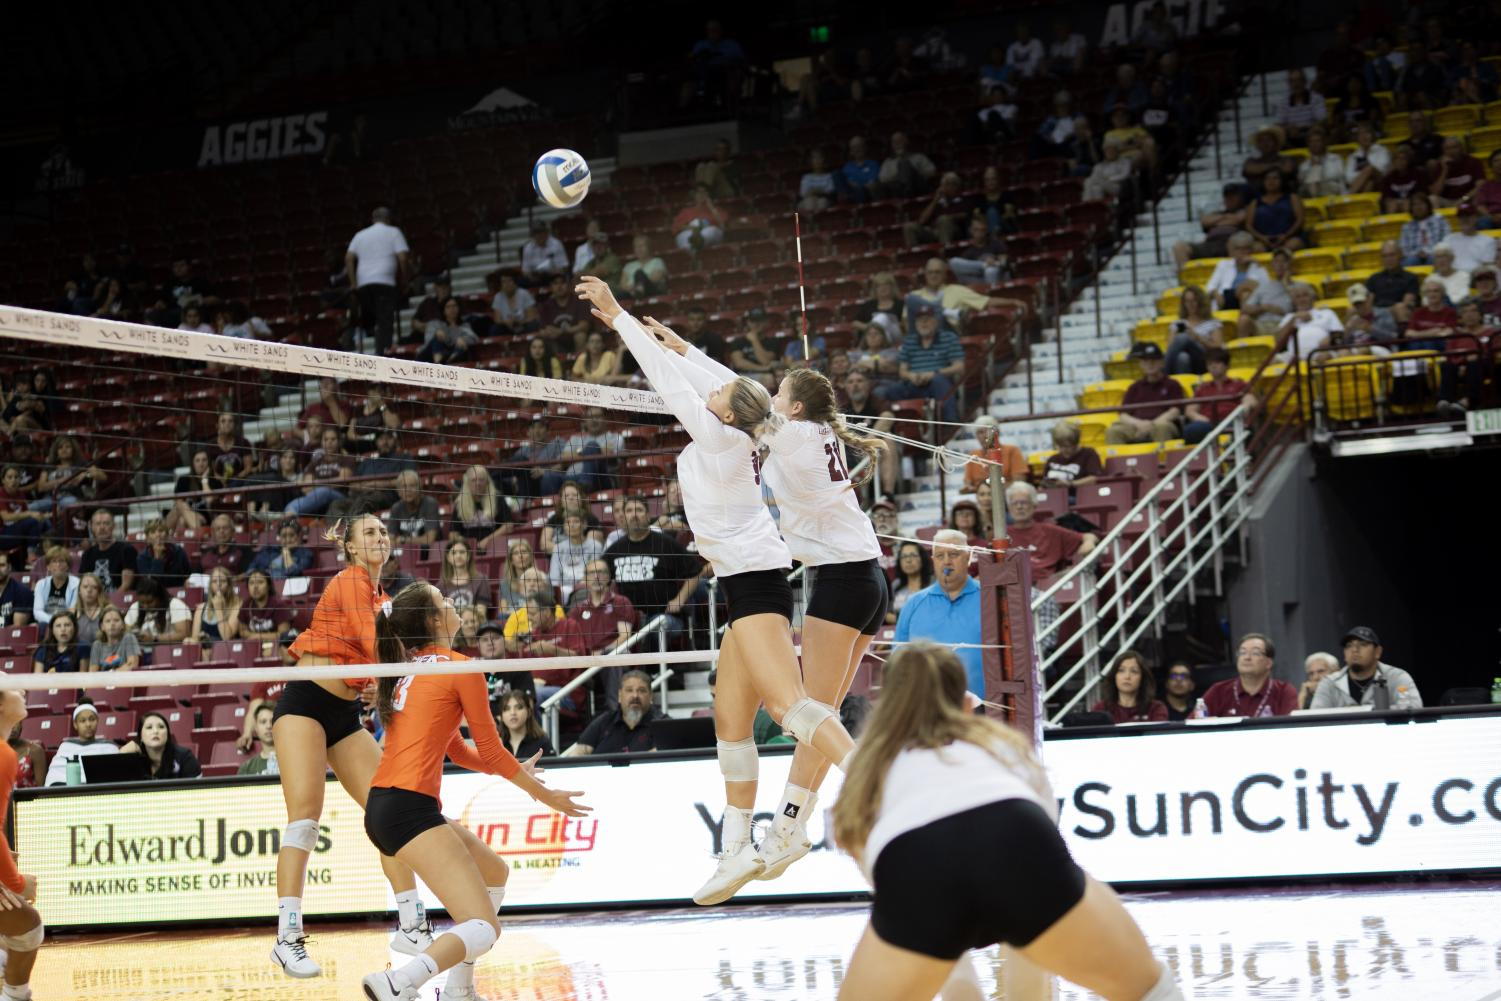 New Mexico State improves to a perfect 5-0 in the WAC in their four-set win over CSU Bakersfield.